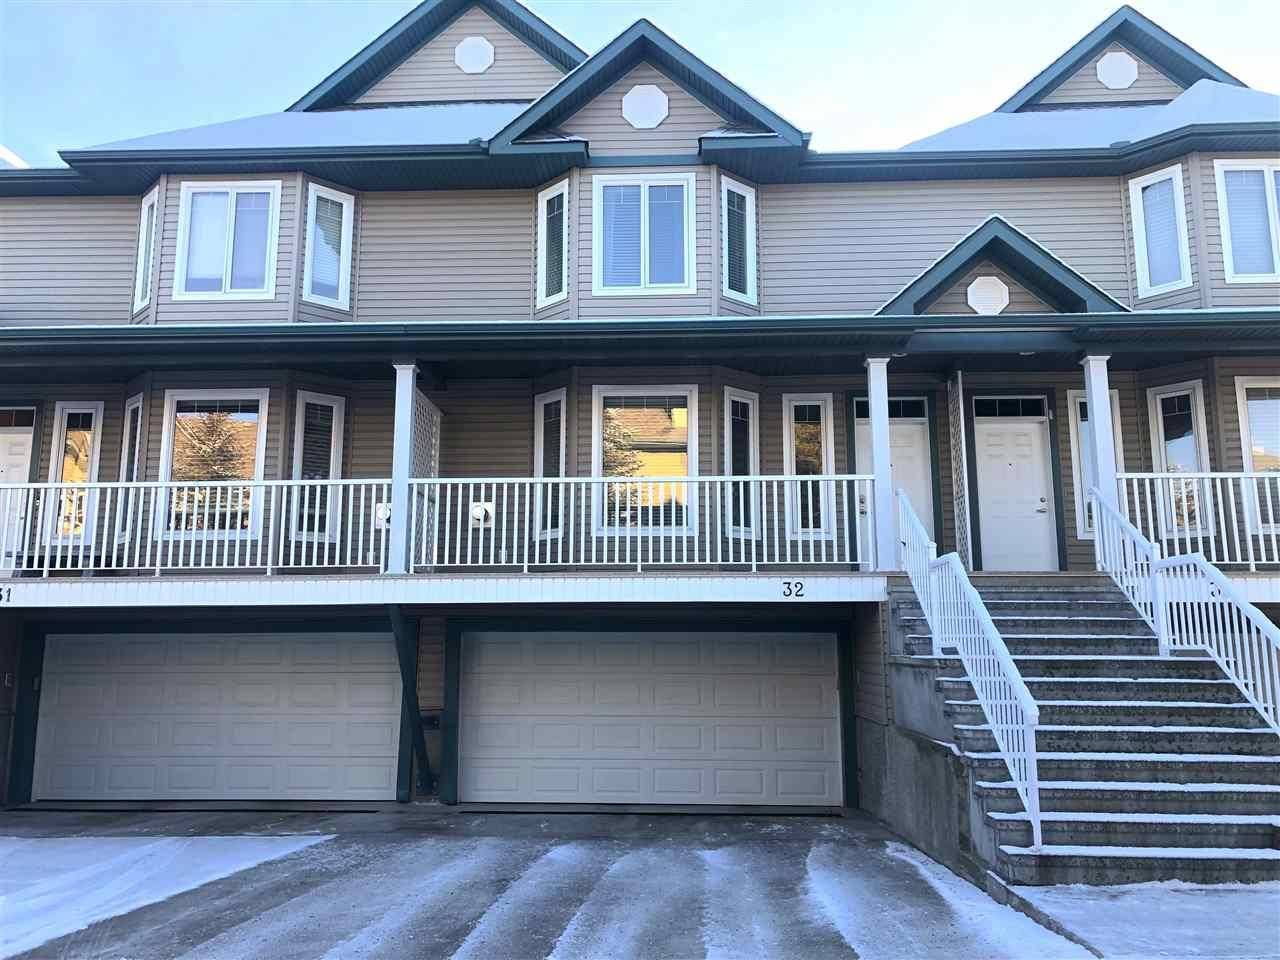 Townhouse for sale at 903 Rutherford Rd Sw Unit 32 Edmonton Alberta - MLS: E4176506